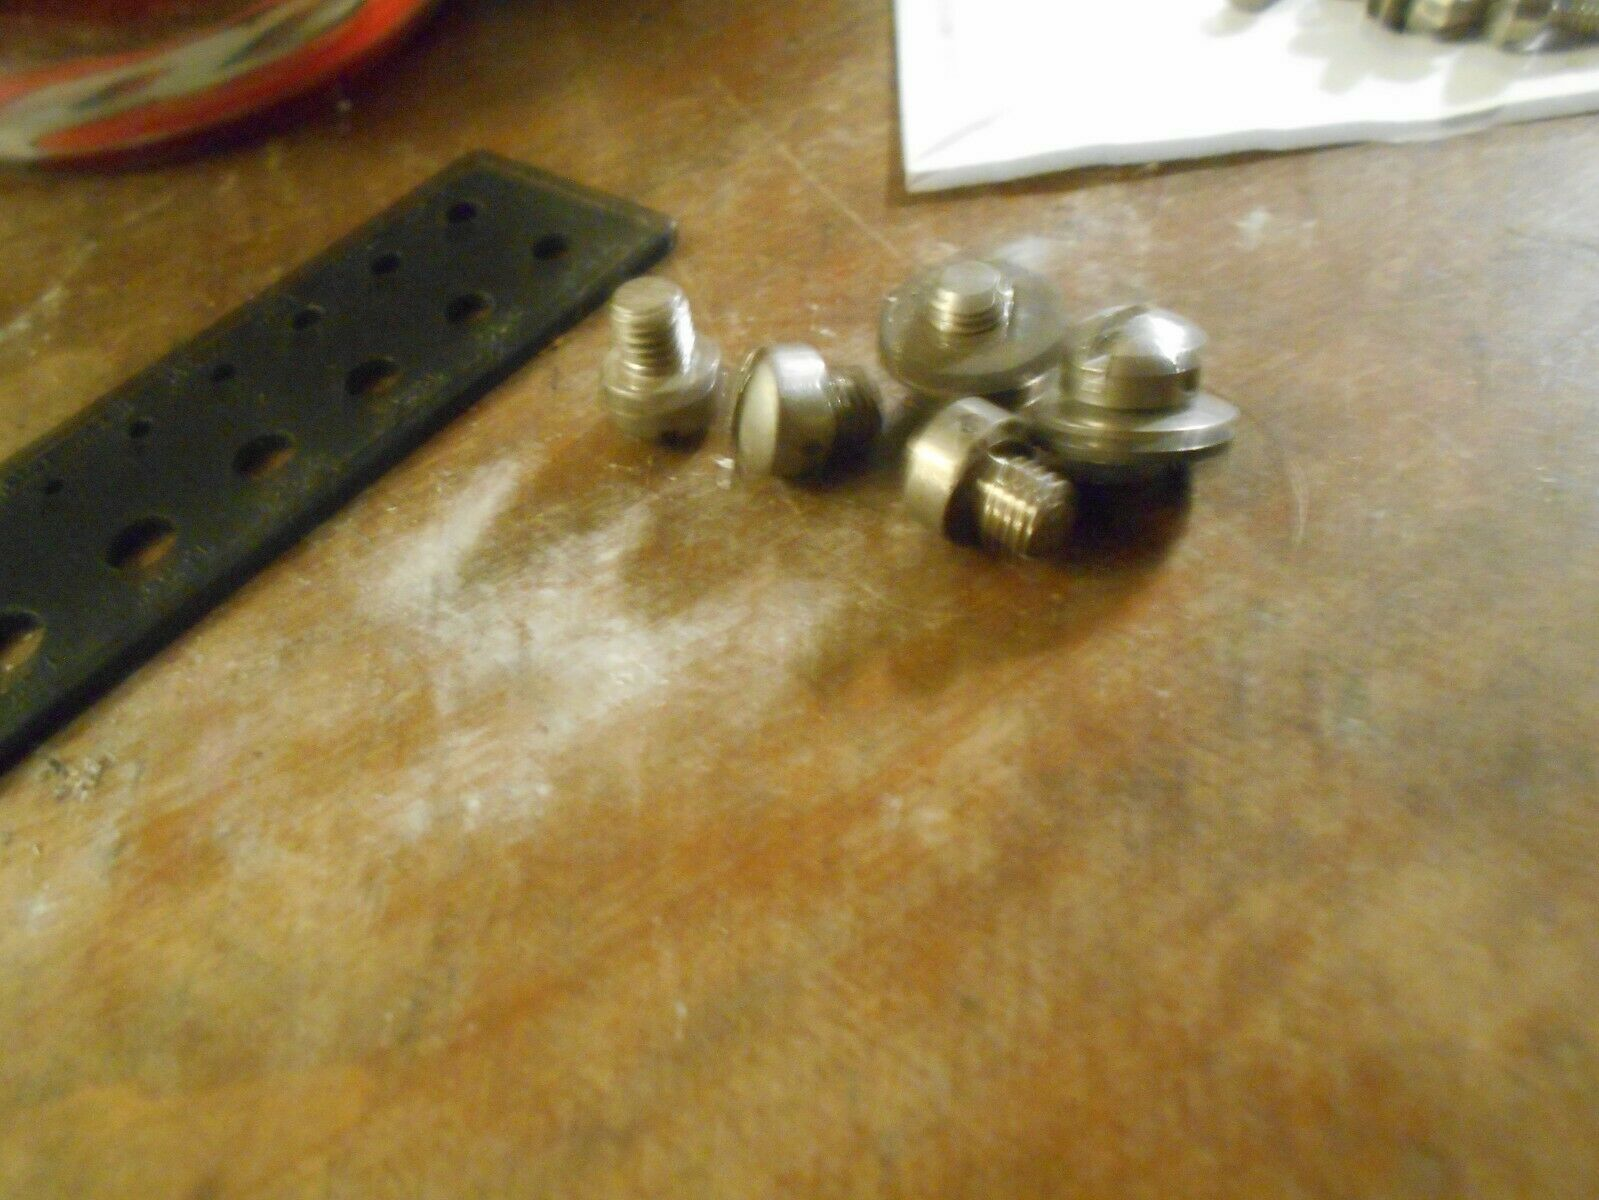 (1) sealable screw (sealed with a wire seal)